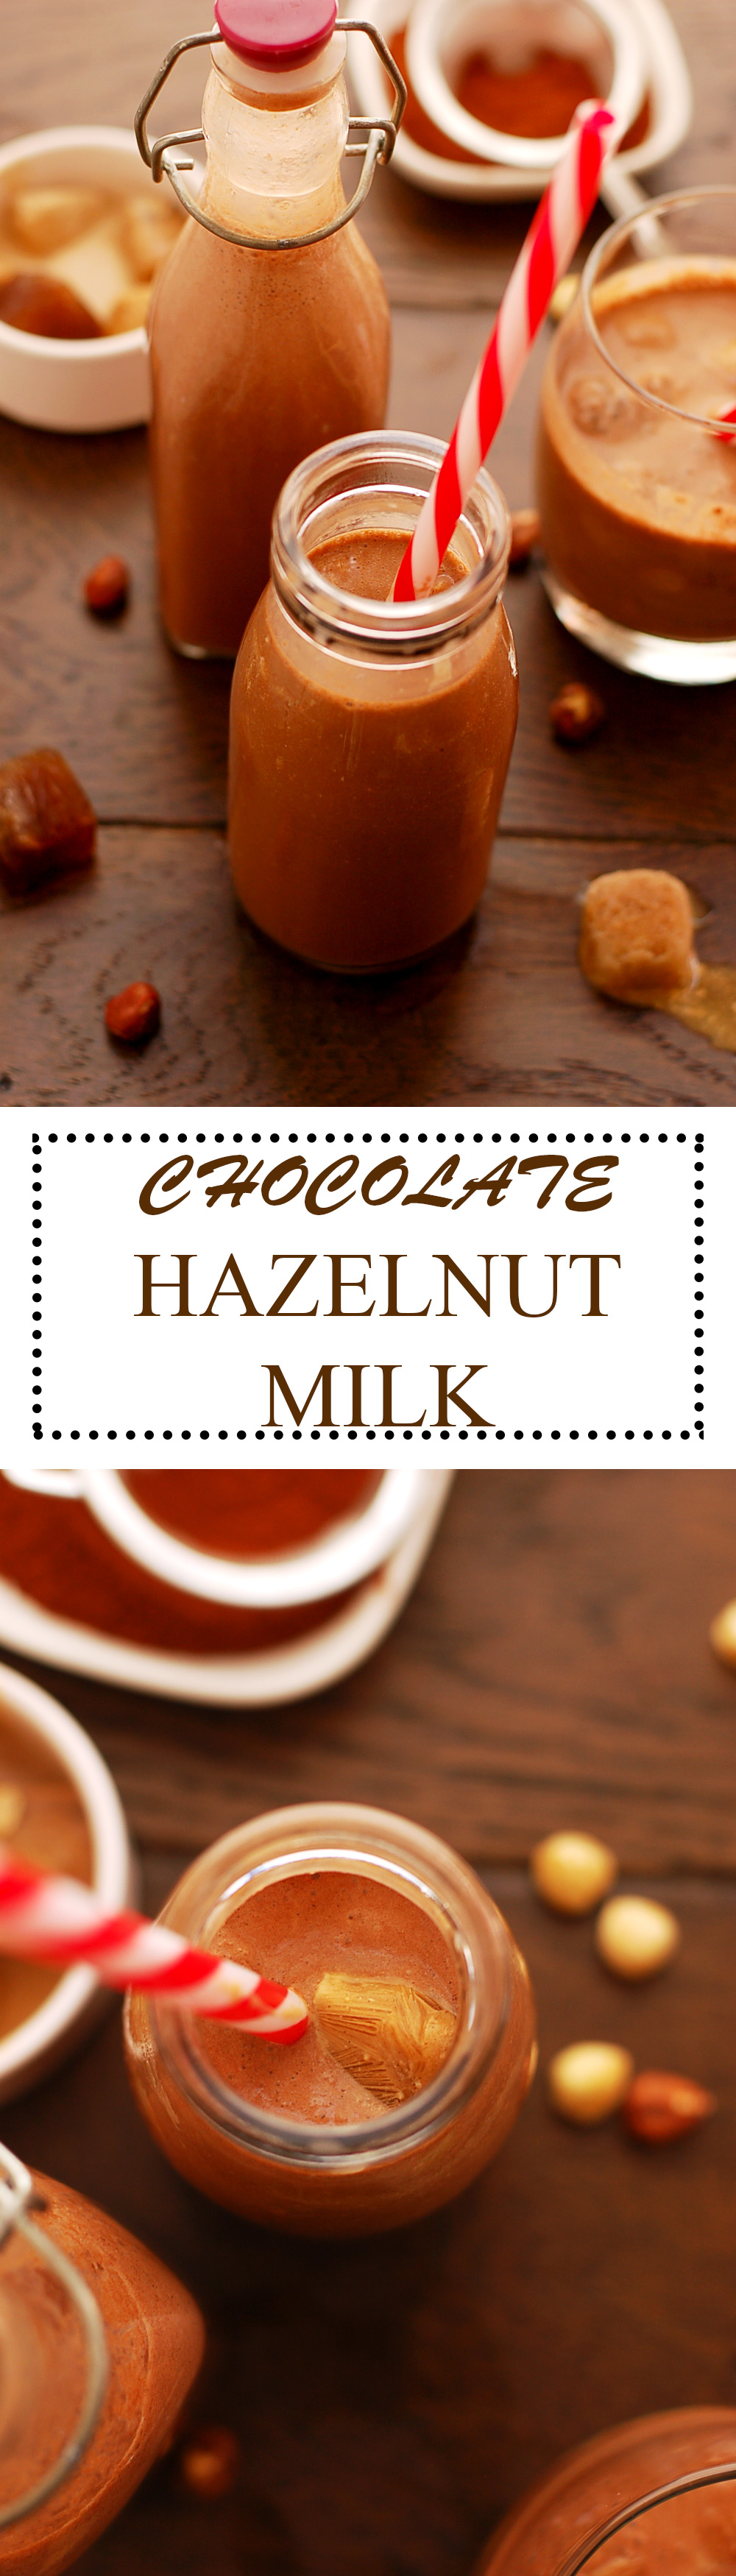 Hazelnut-Milk-Pinterest